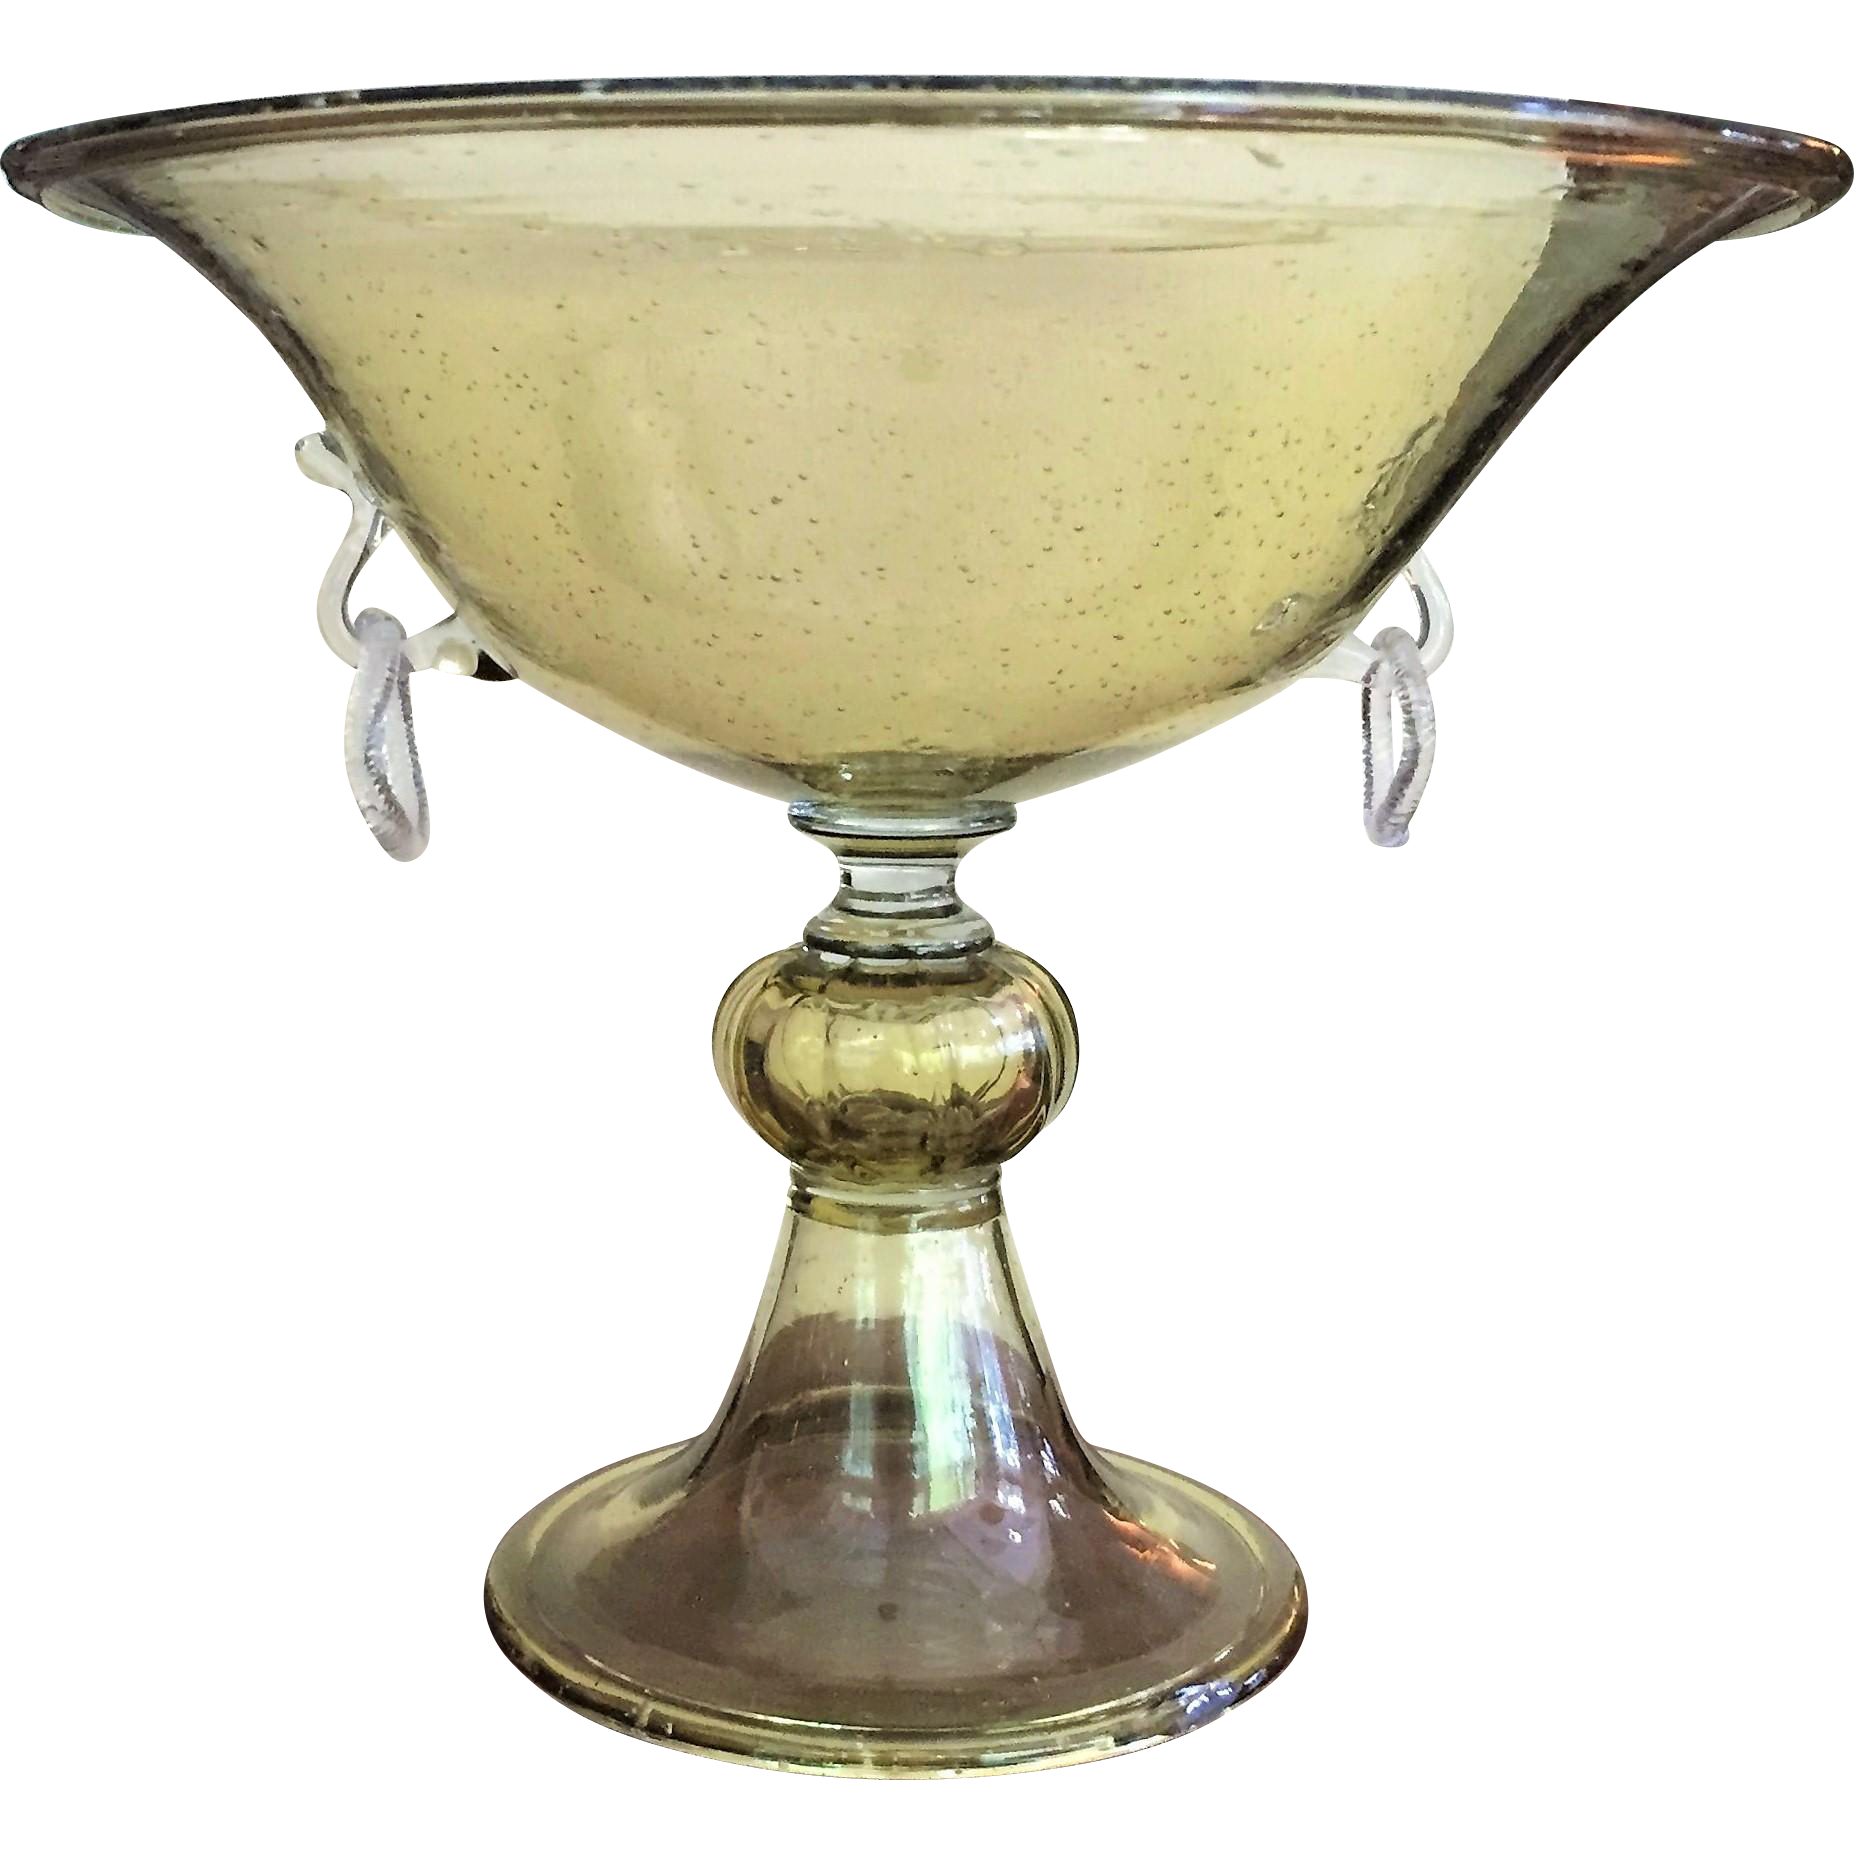 lg 11 x9 venetian glass murano compote centerpiece bowl two handles from glassloversgallery on. Black Bedroom Furniture Sets. Home Design Ideas